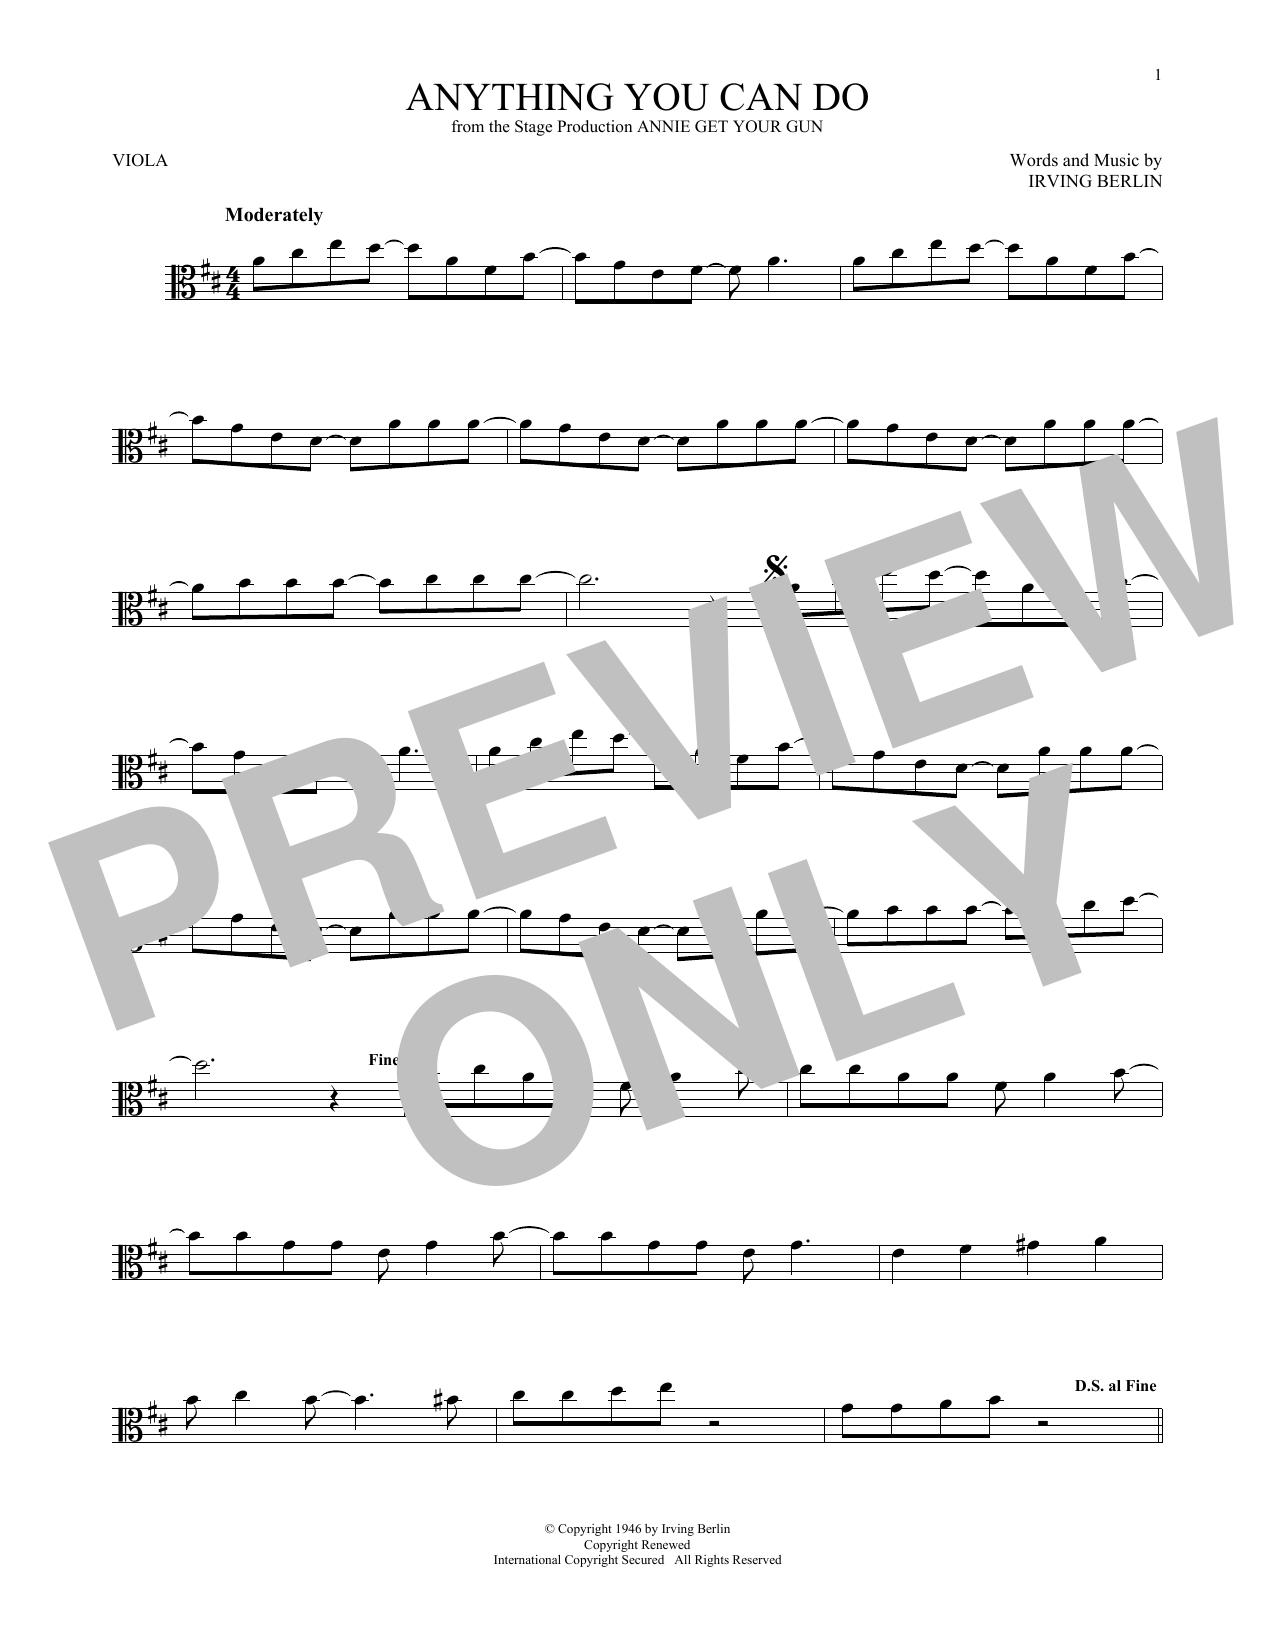 Anything You Can Do (from Annie Get Your Gun) (Viola Solo)